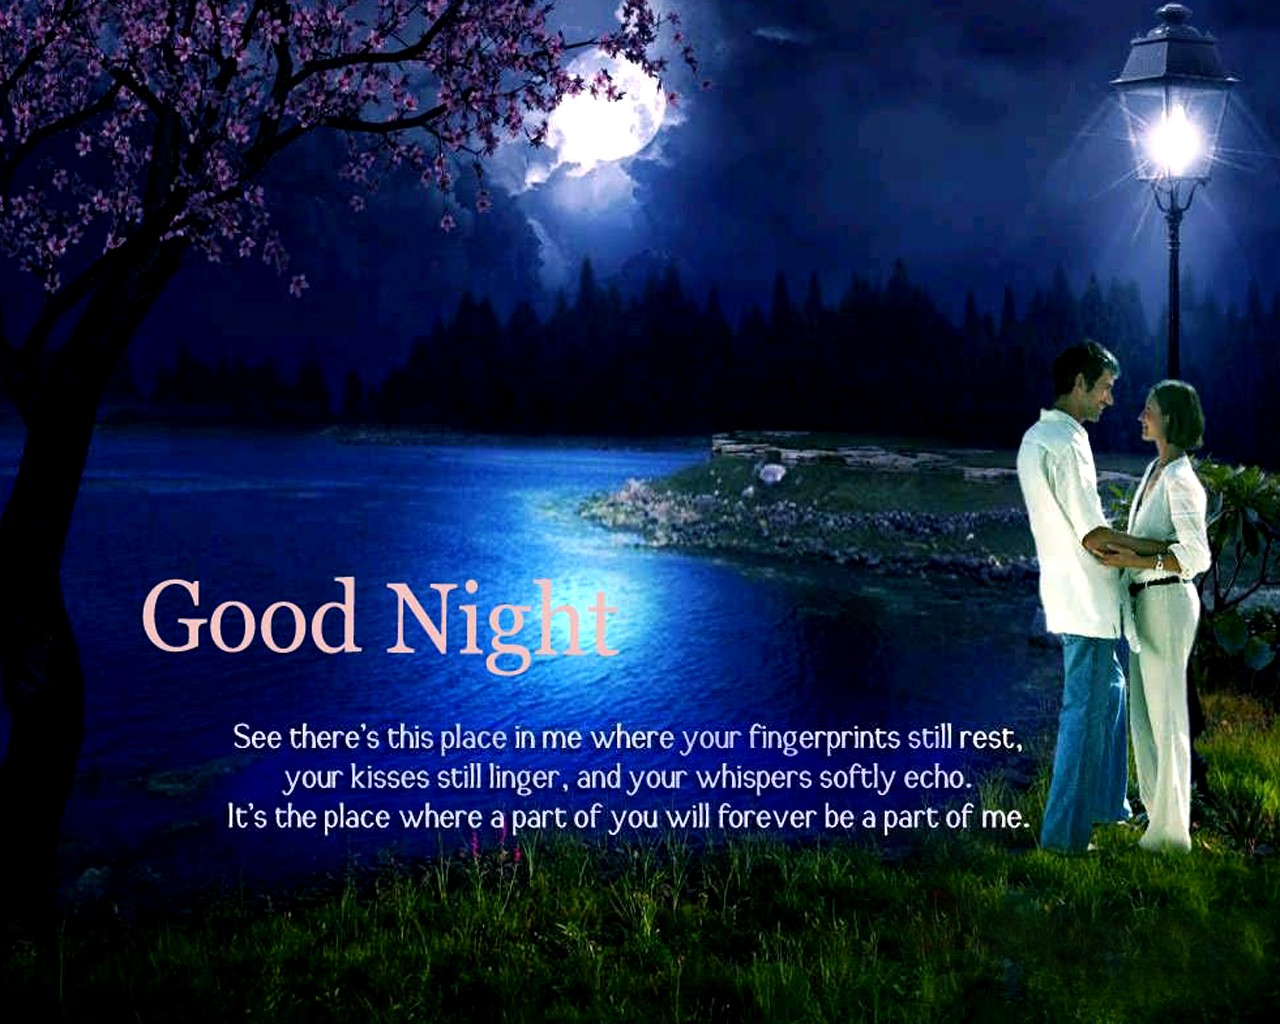 Good night wishes messages images for girlfriend wallpaper Download